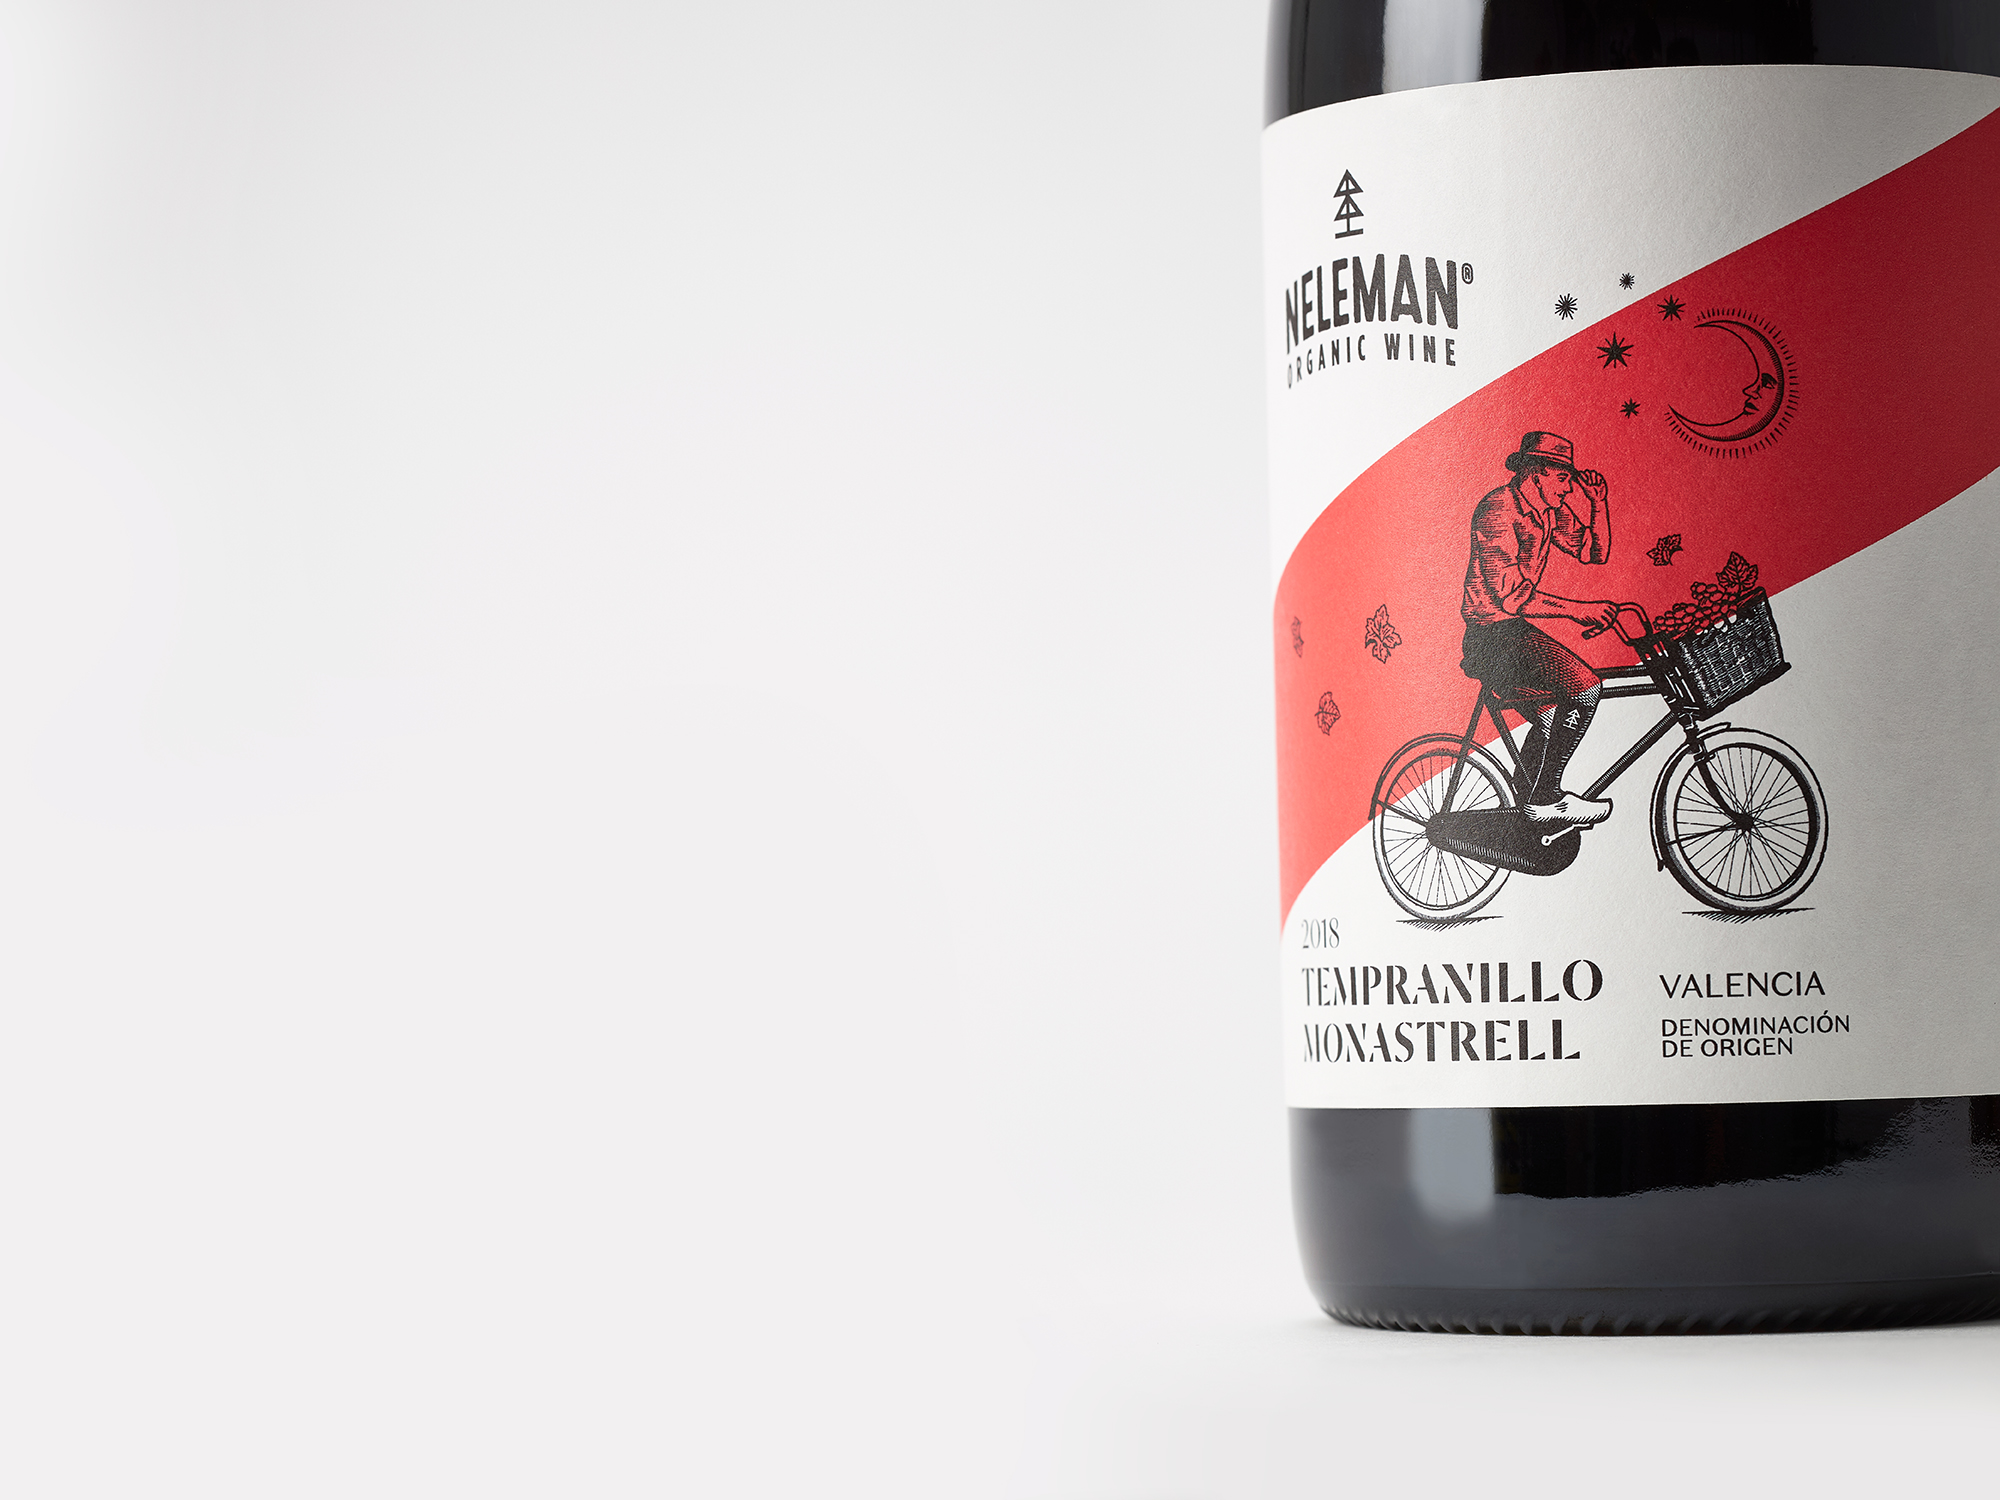 onfire design neleman wine packaging design 2